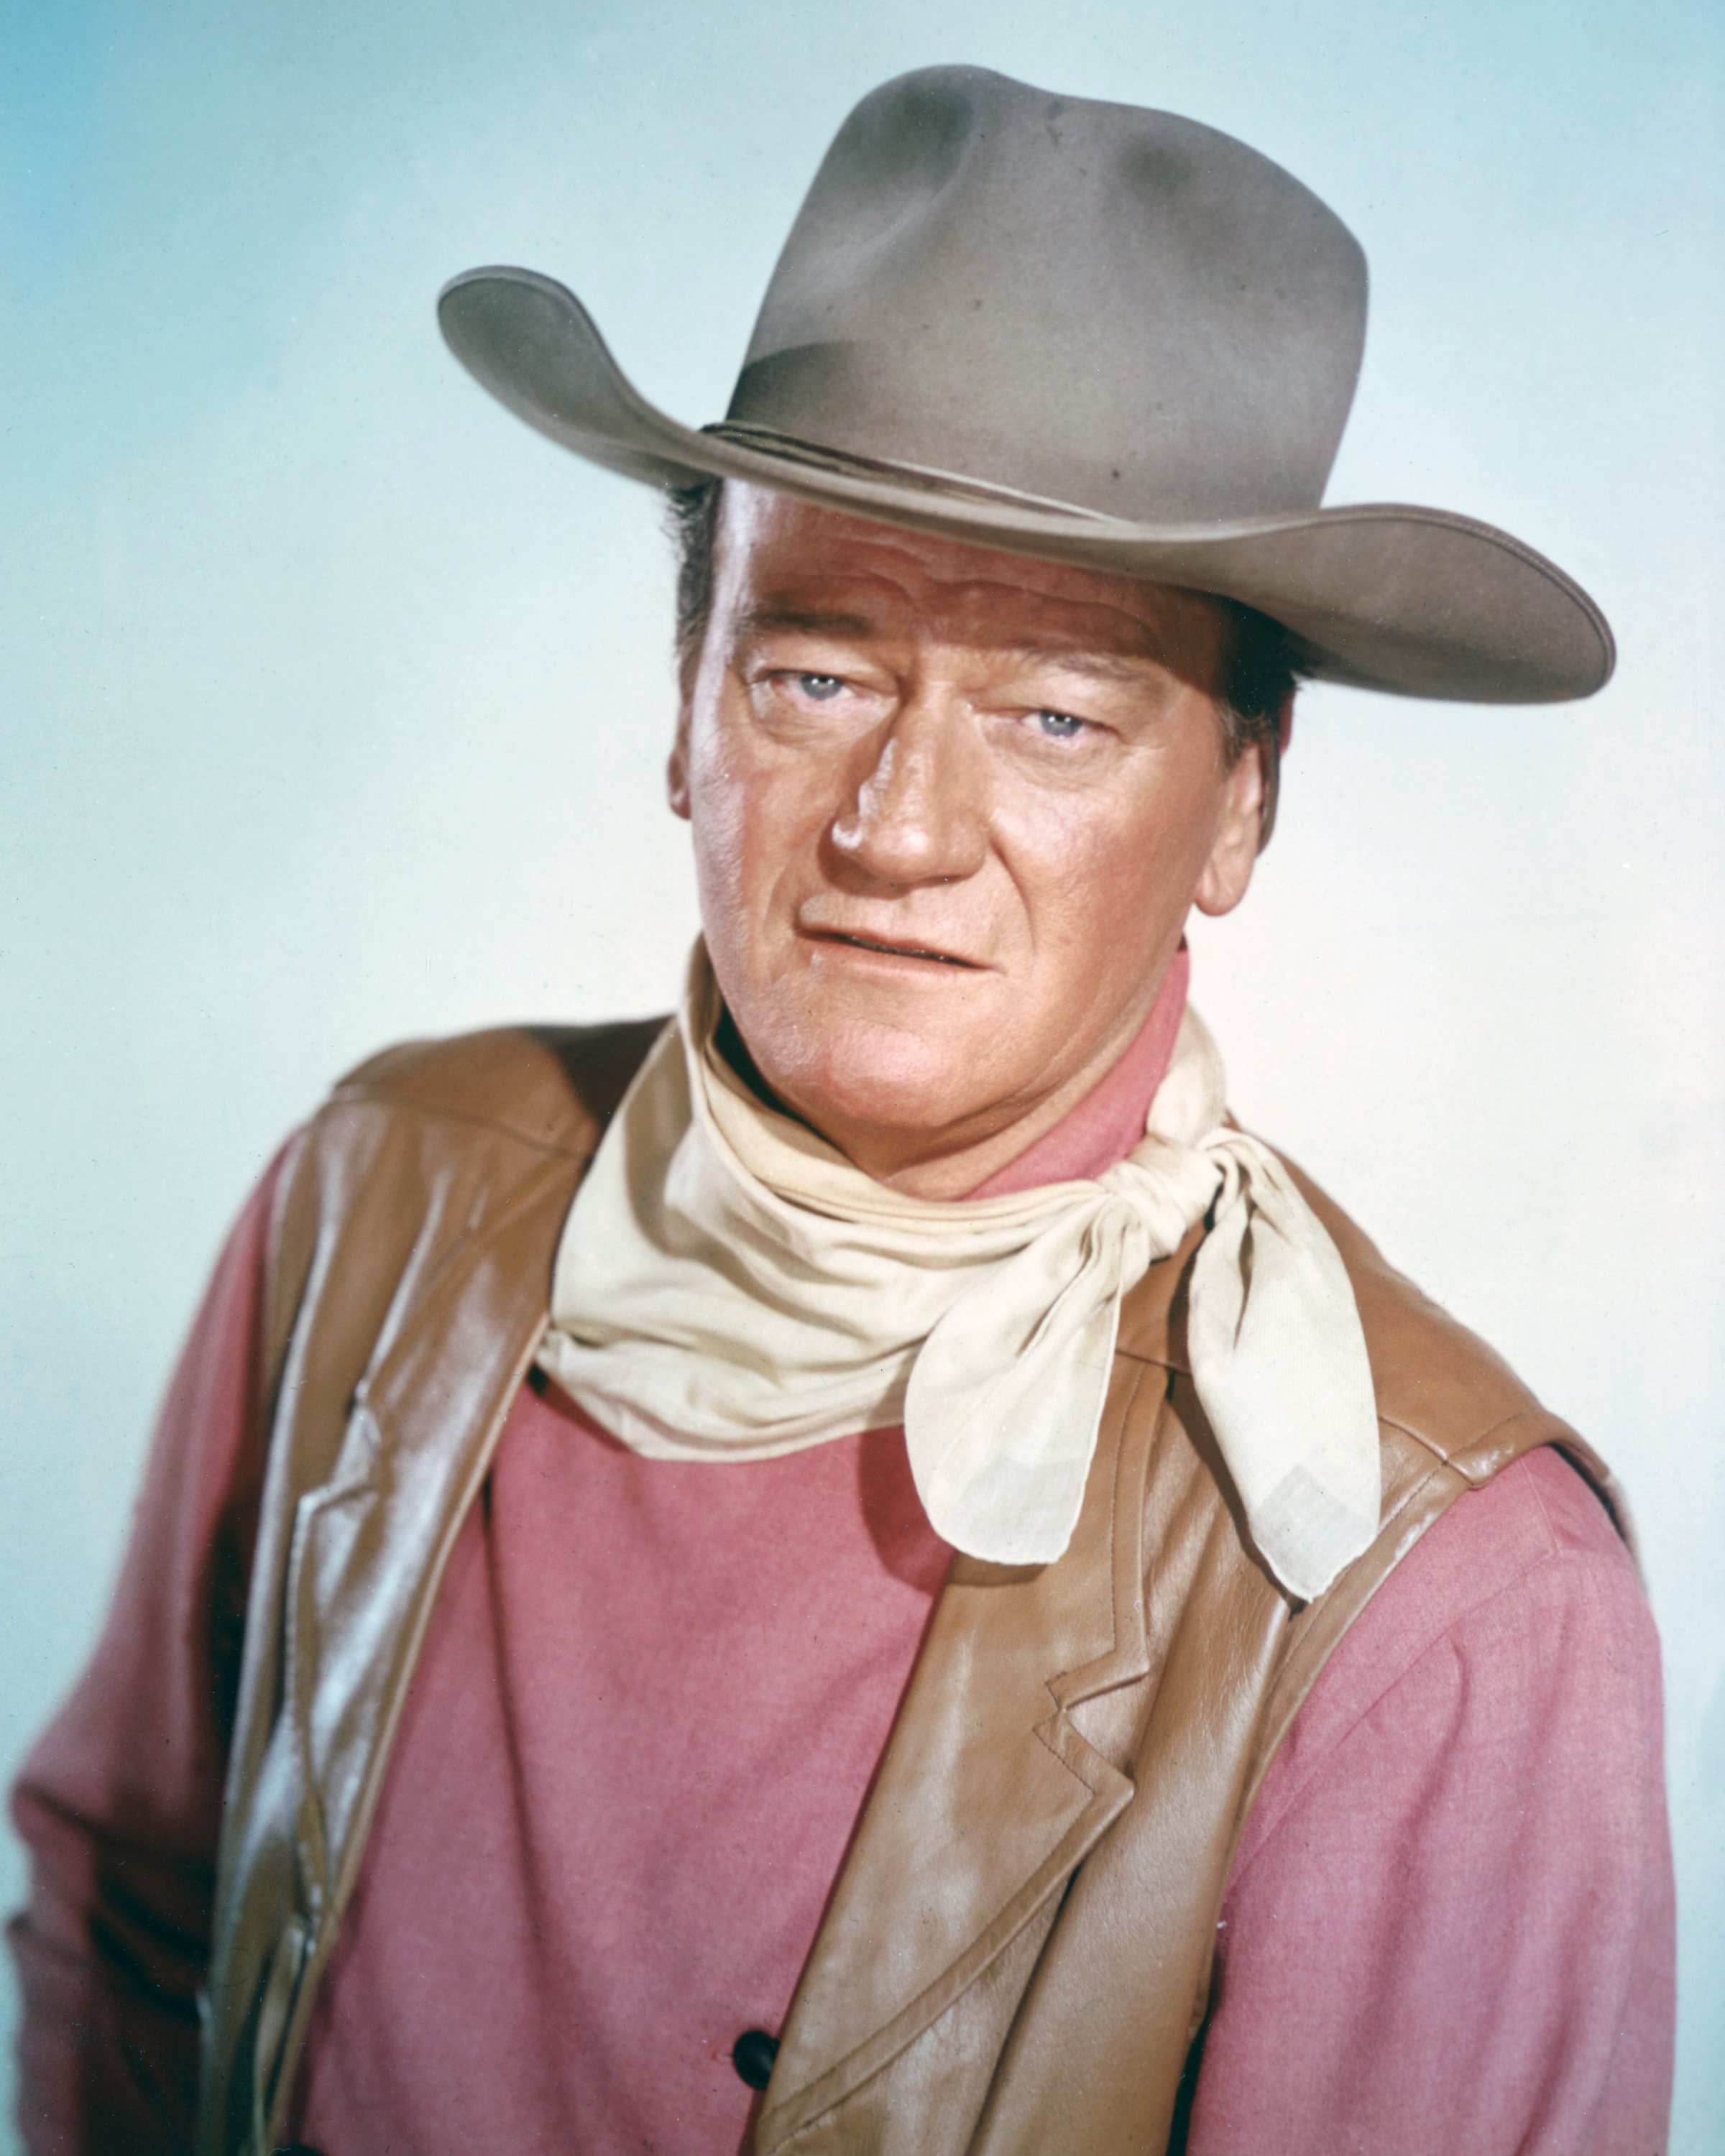 Portrait of actor John Wayne at a studio, circa 1970 | Photo: GettyImages